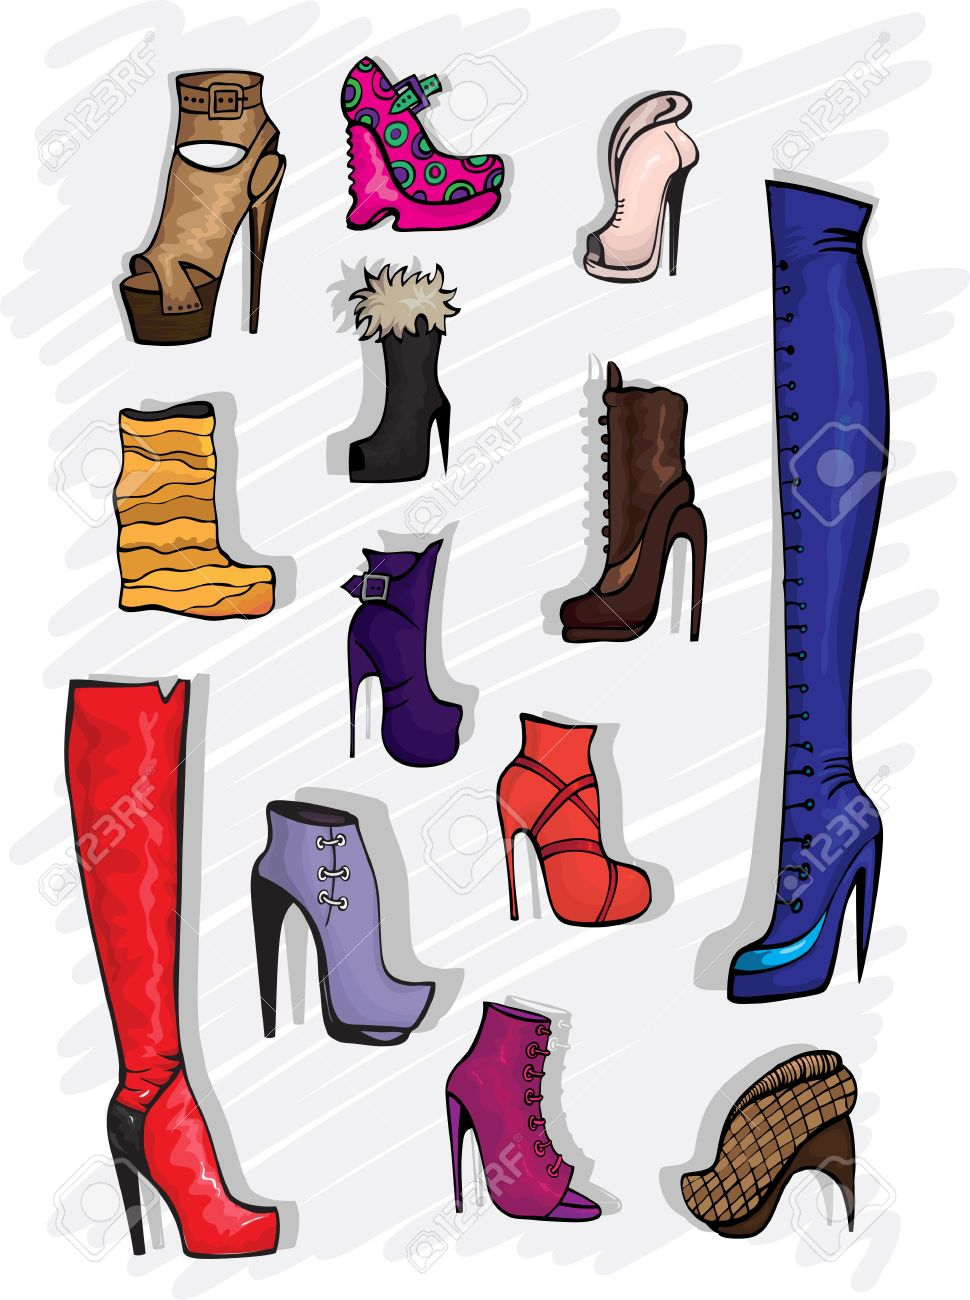 Boots fashion pic boots clip art - Decorative Fashion Shoes Stock Vector 14383496